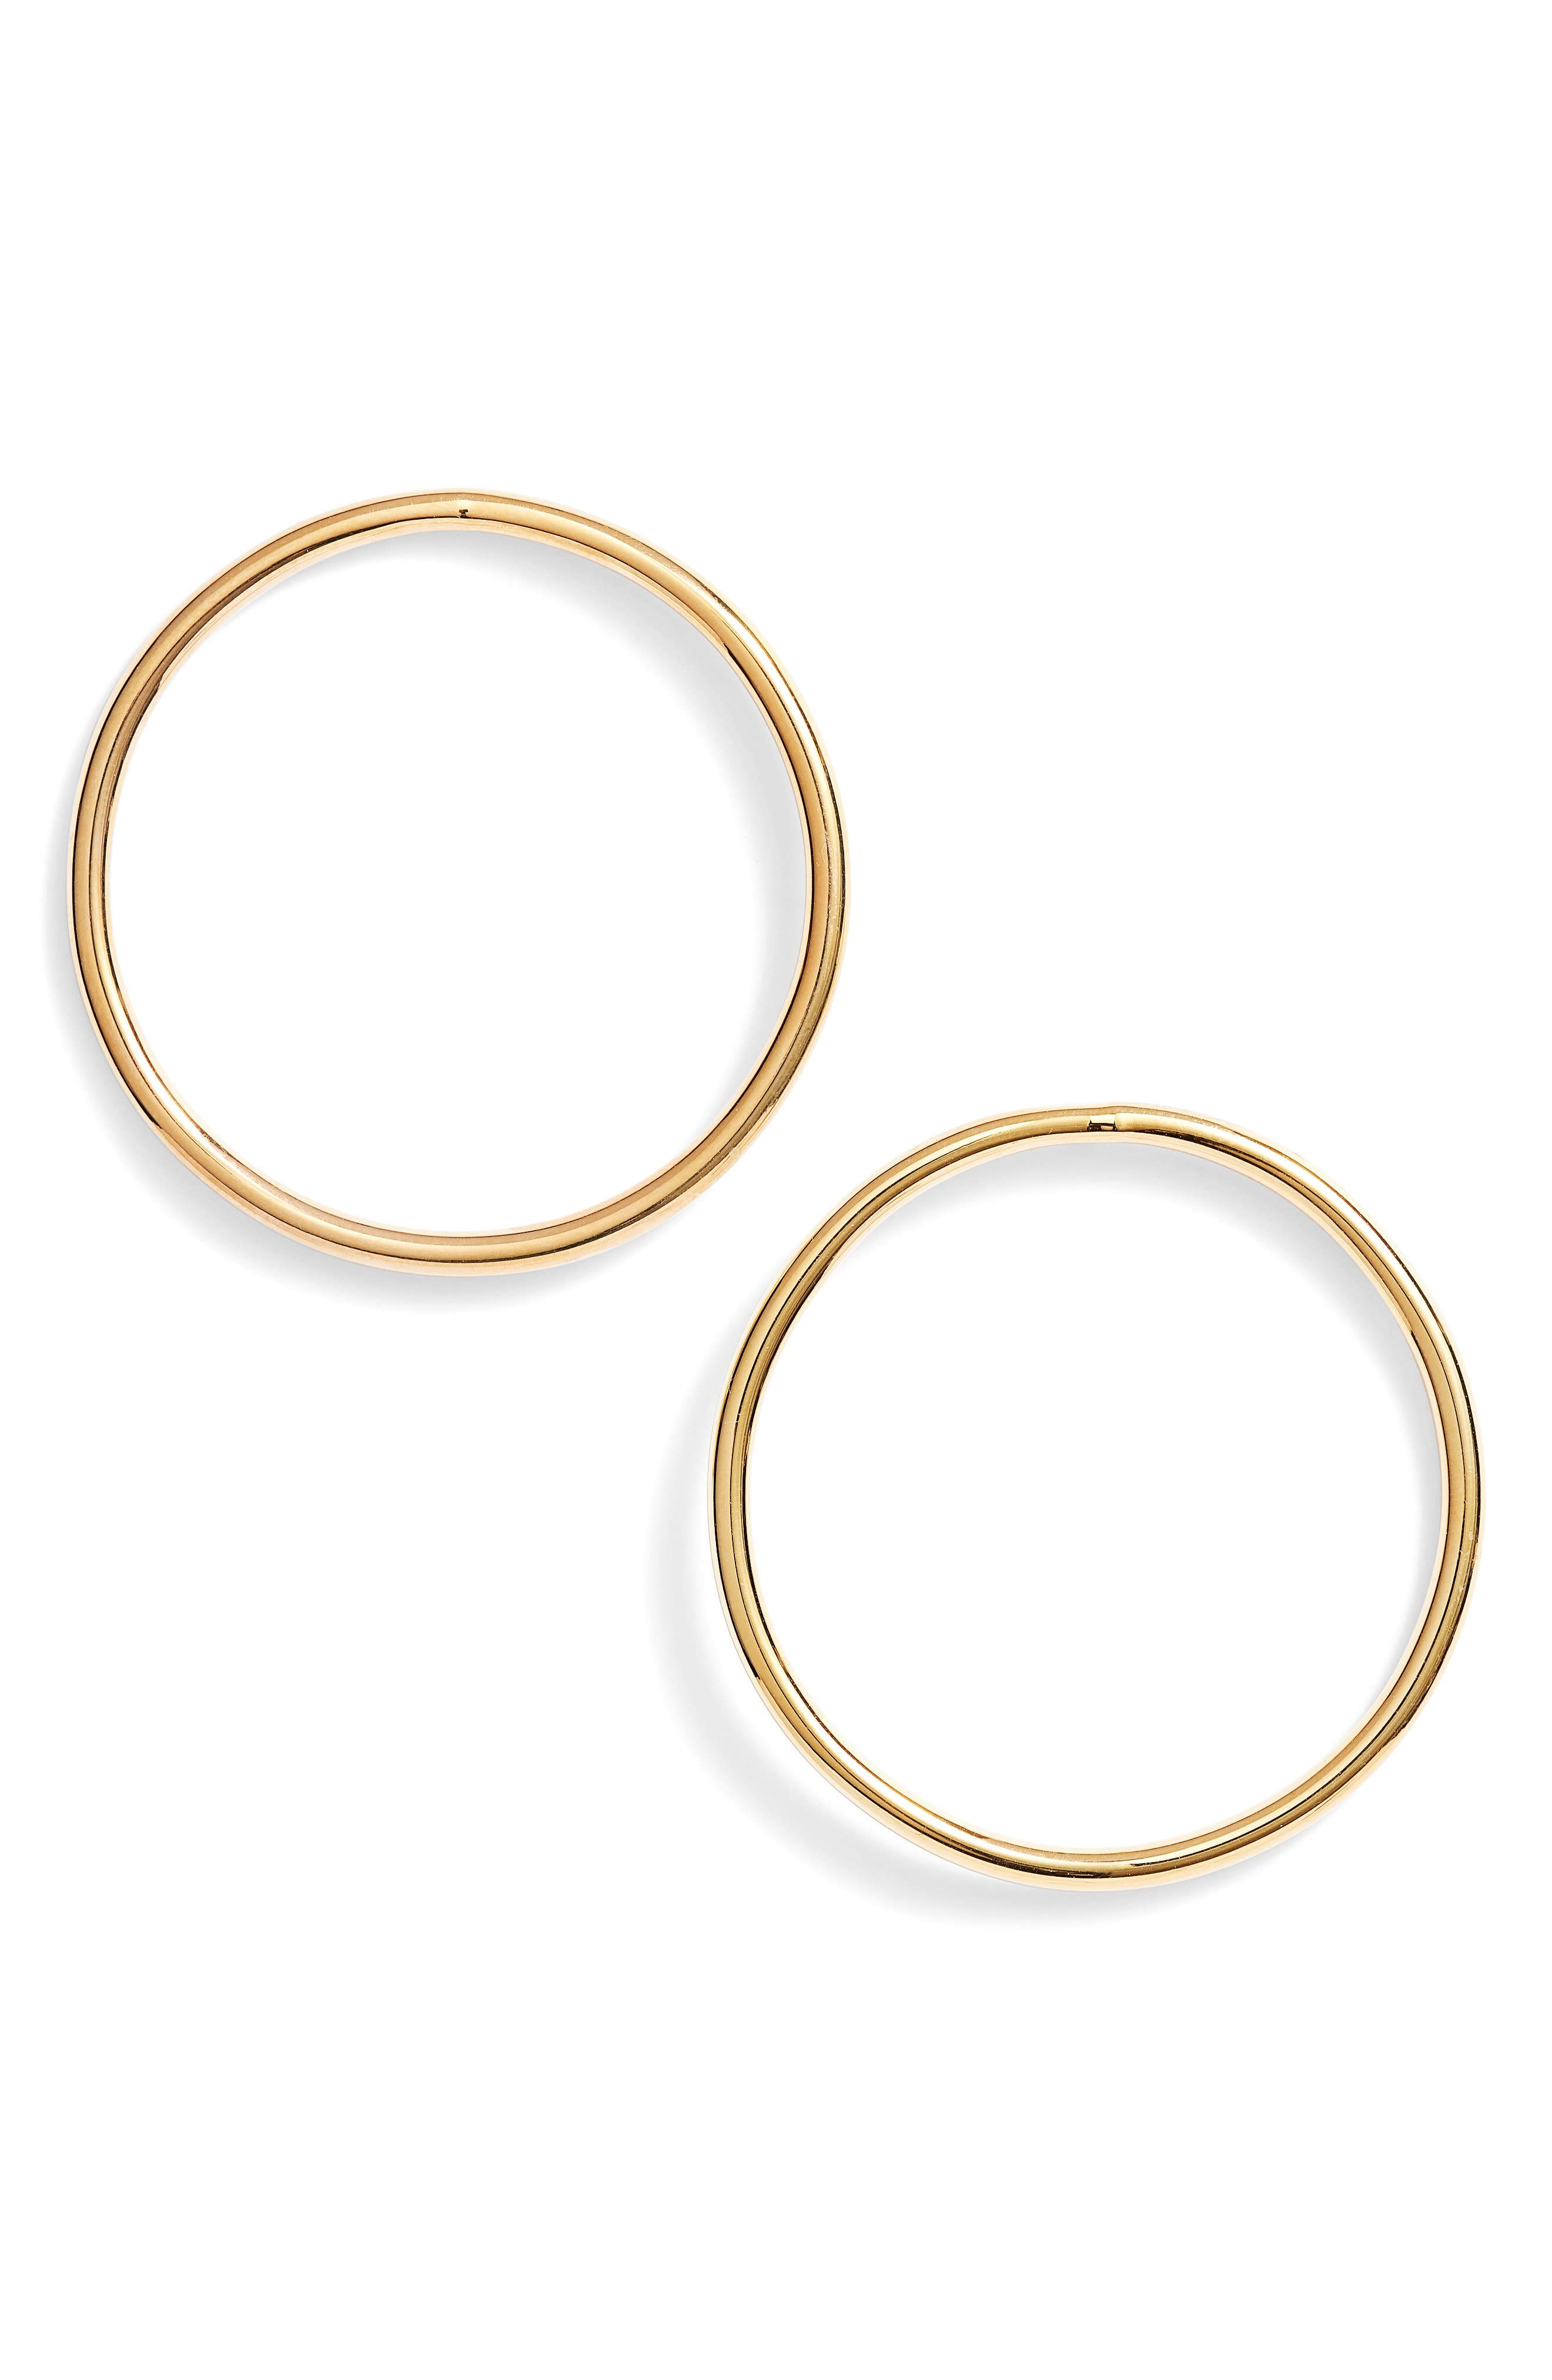 Sole Society Womens In Color: Gold Plated Basic Hoops One Size From Sole Society EssB2Kb238